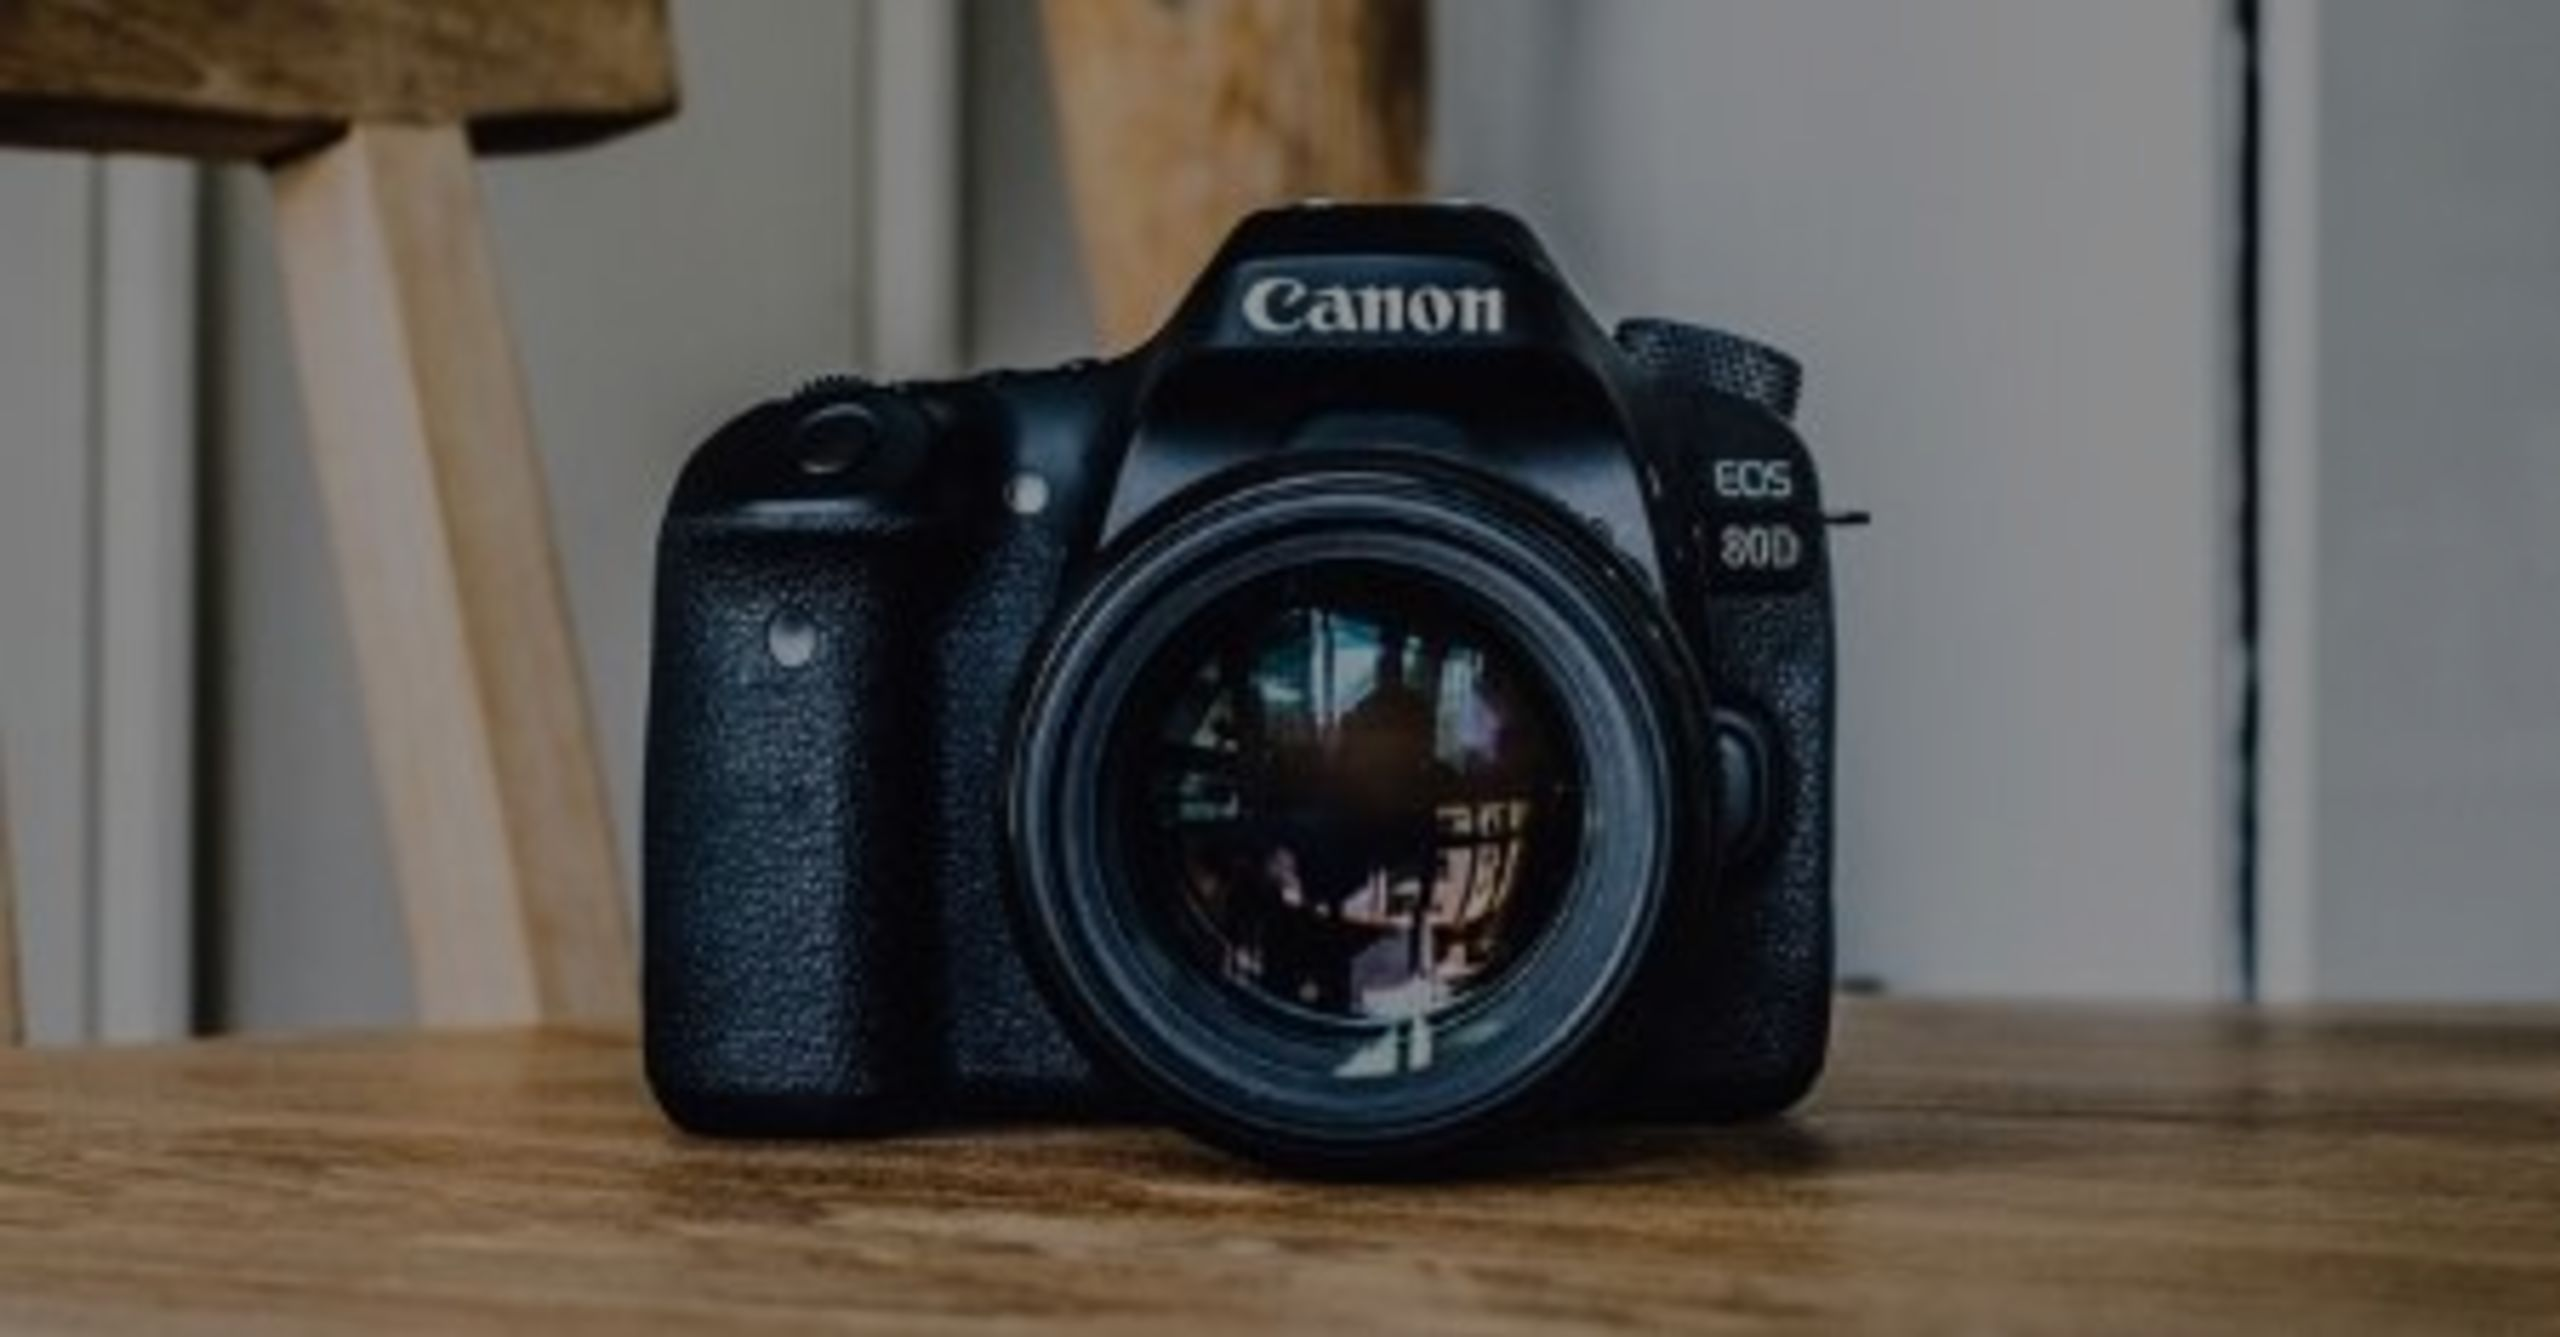 Photos and Selling Your Home